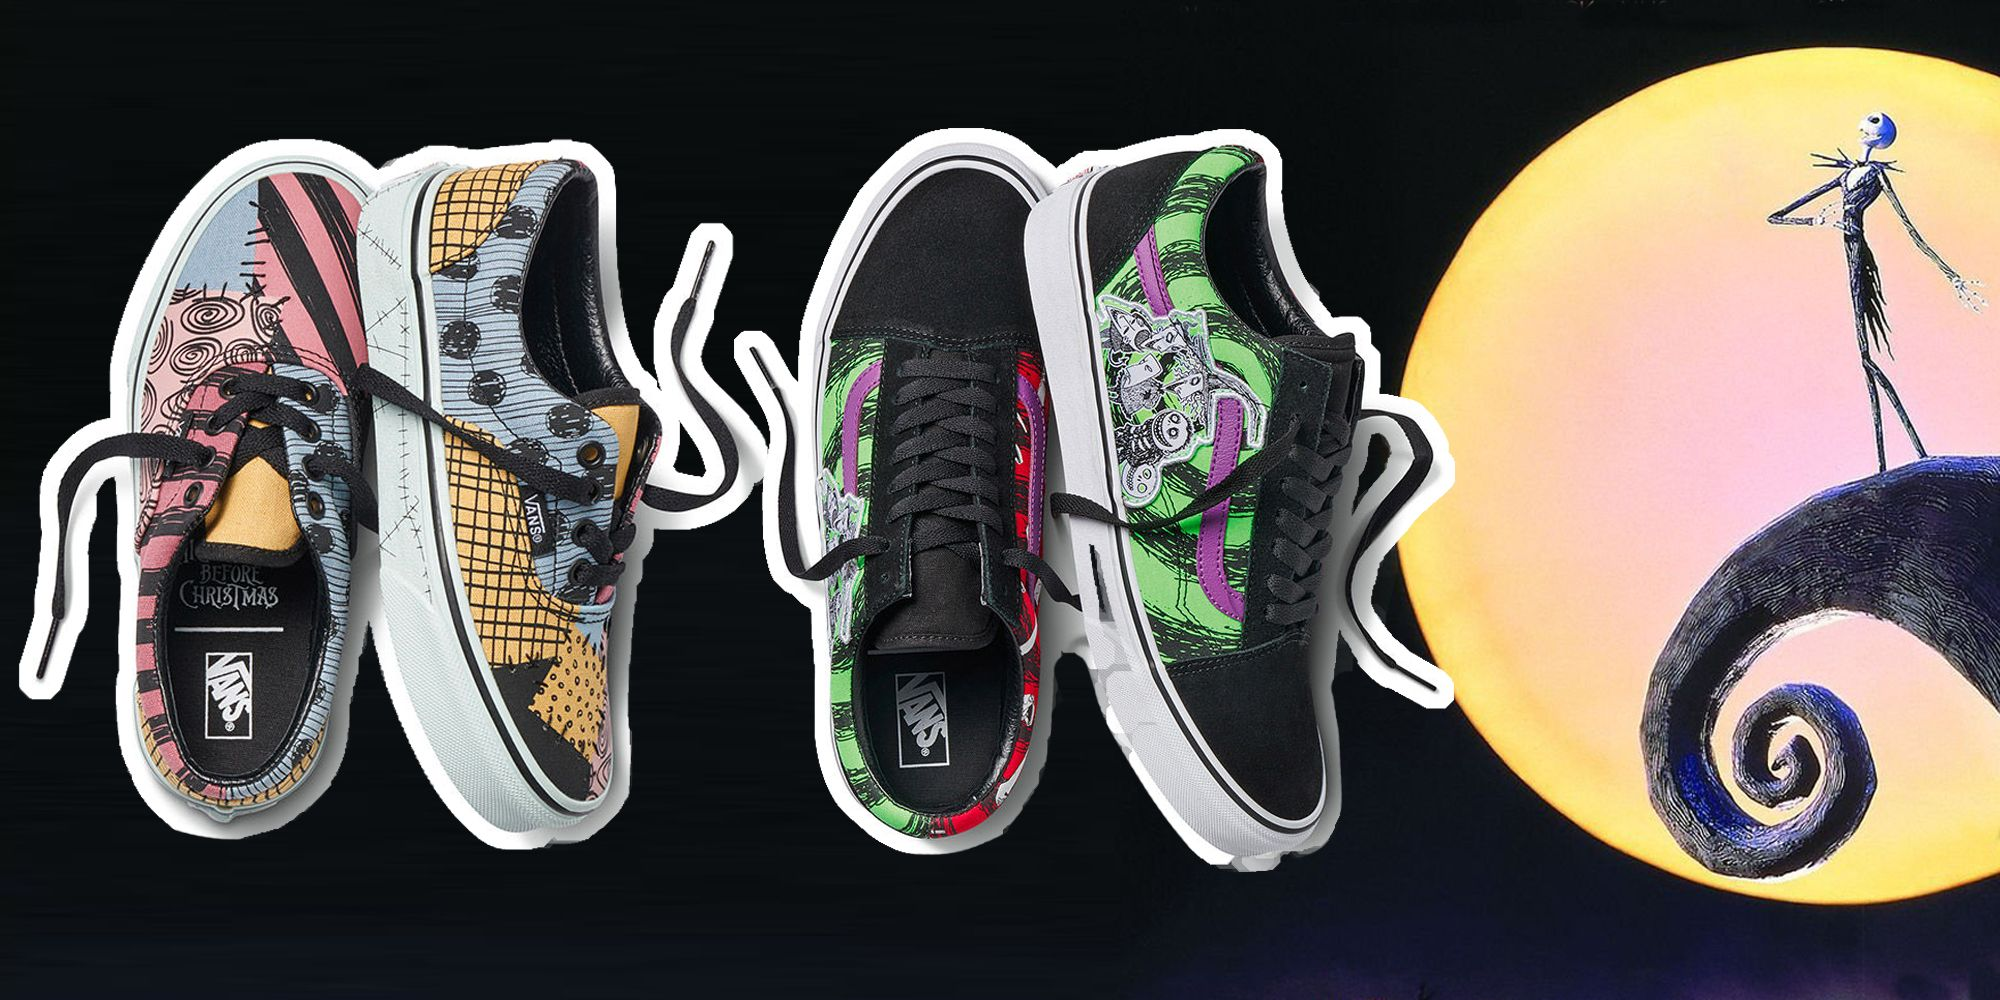 Sneakers Vans x The Night Before Christmas, Halloween 2019